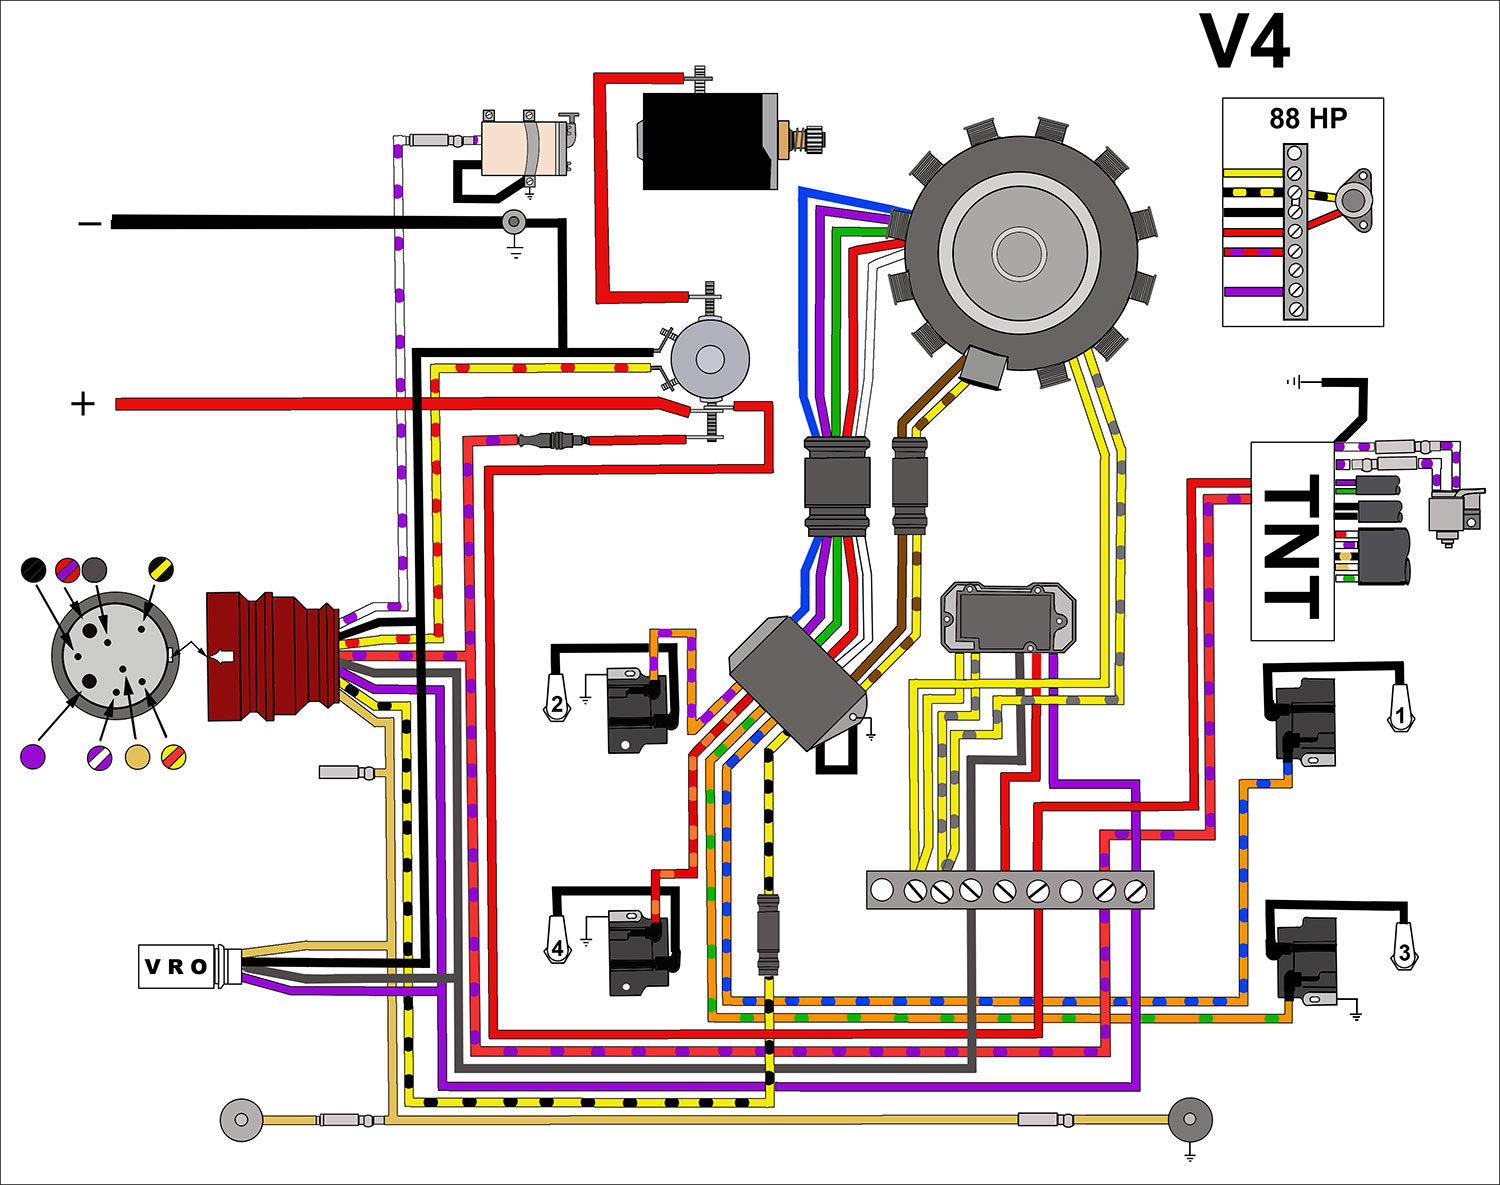 Johnson Switch Diagram Wiring Schematics Four Way Wire Evinrude Outboard Diagrams Mastertech Marine Limit